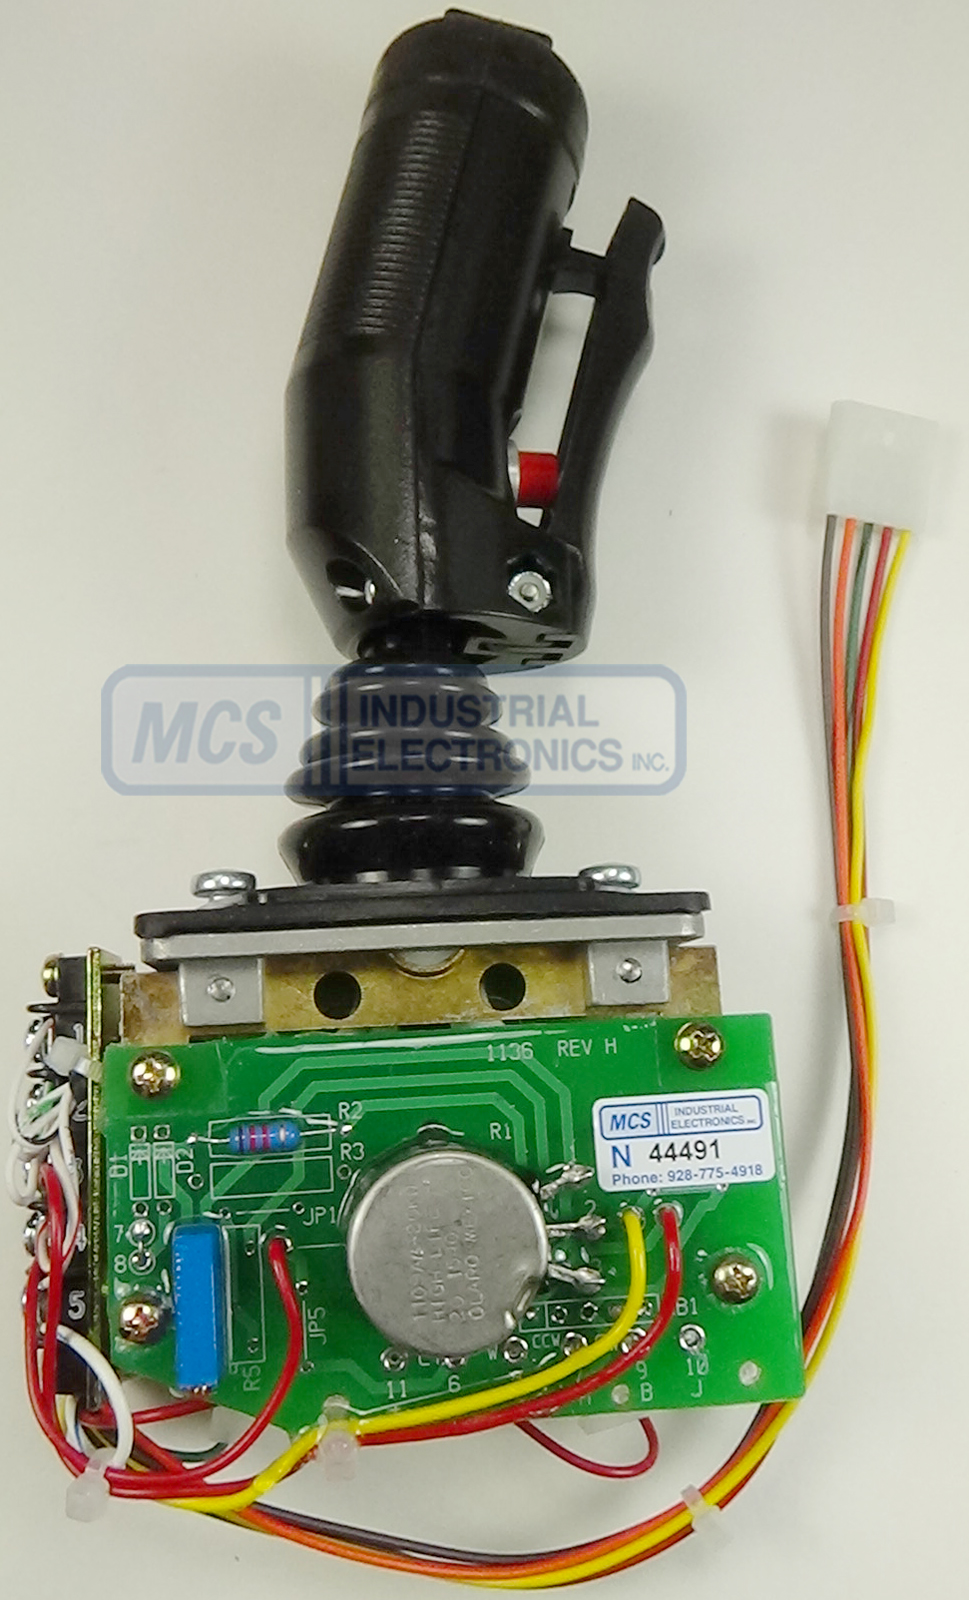 57890 Genie Joystick Controller Replacement MCS